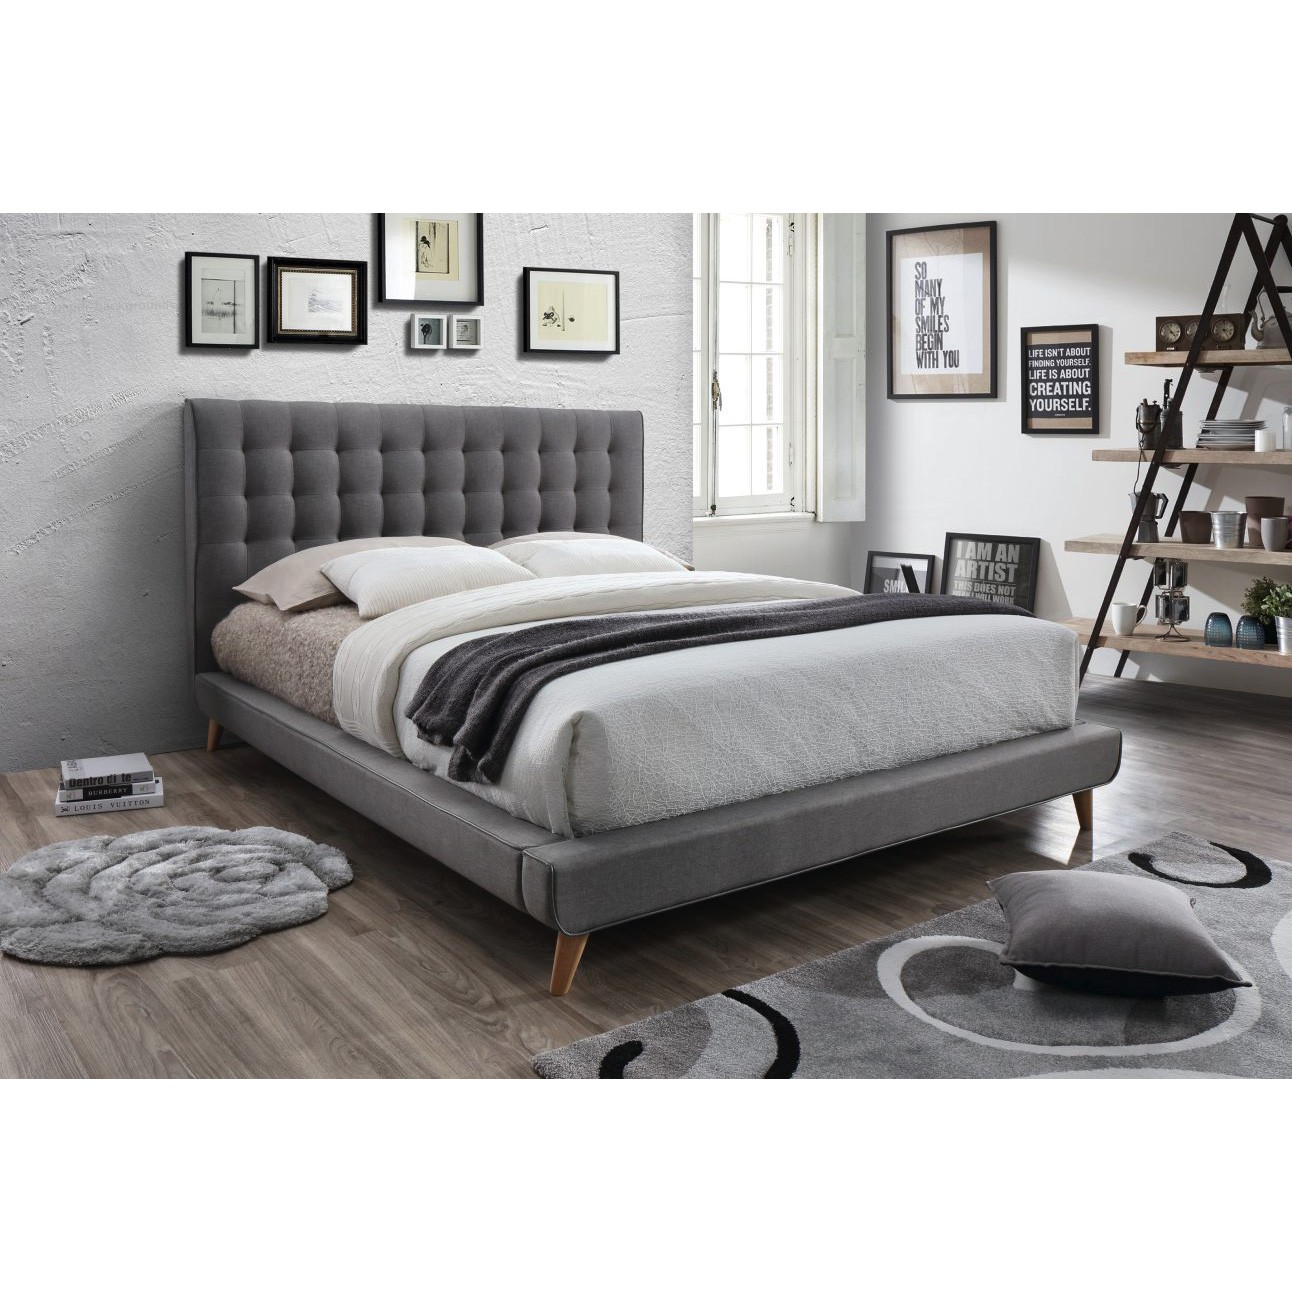 Jacob Fabric Platform Bed, Queen